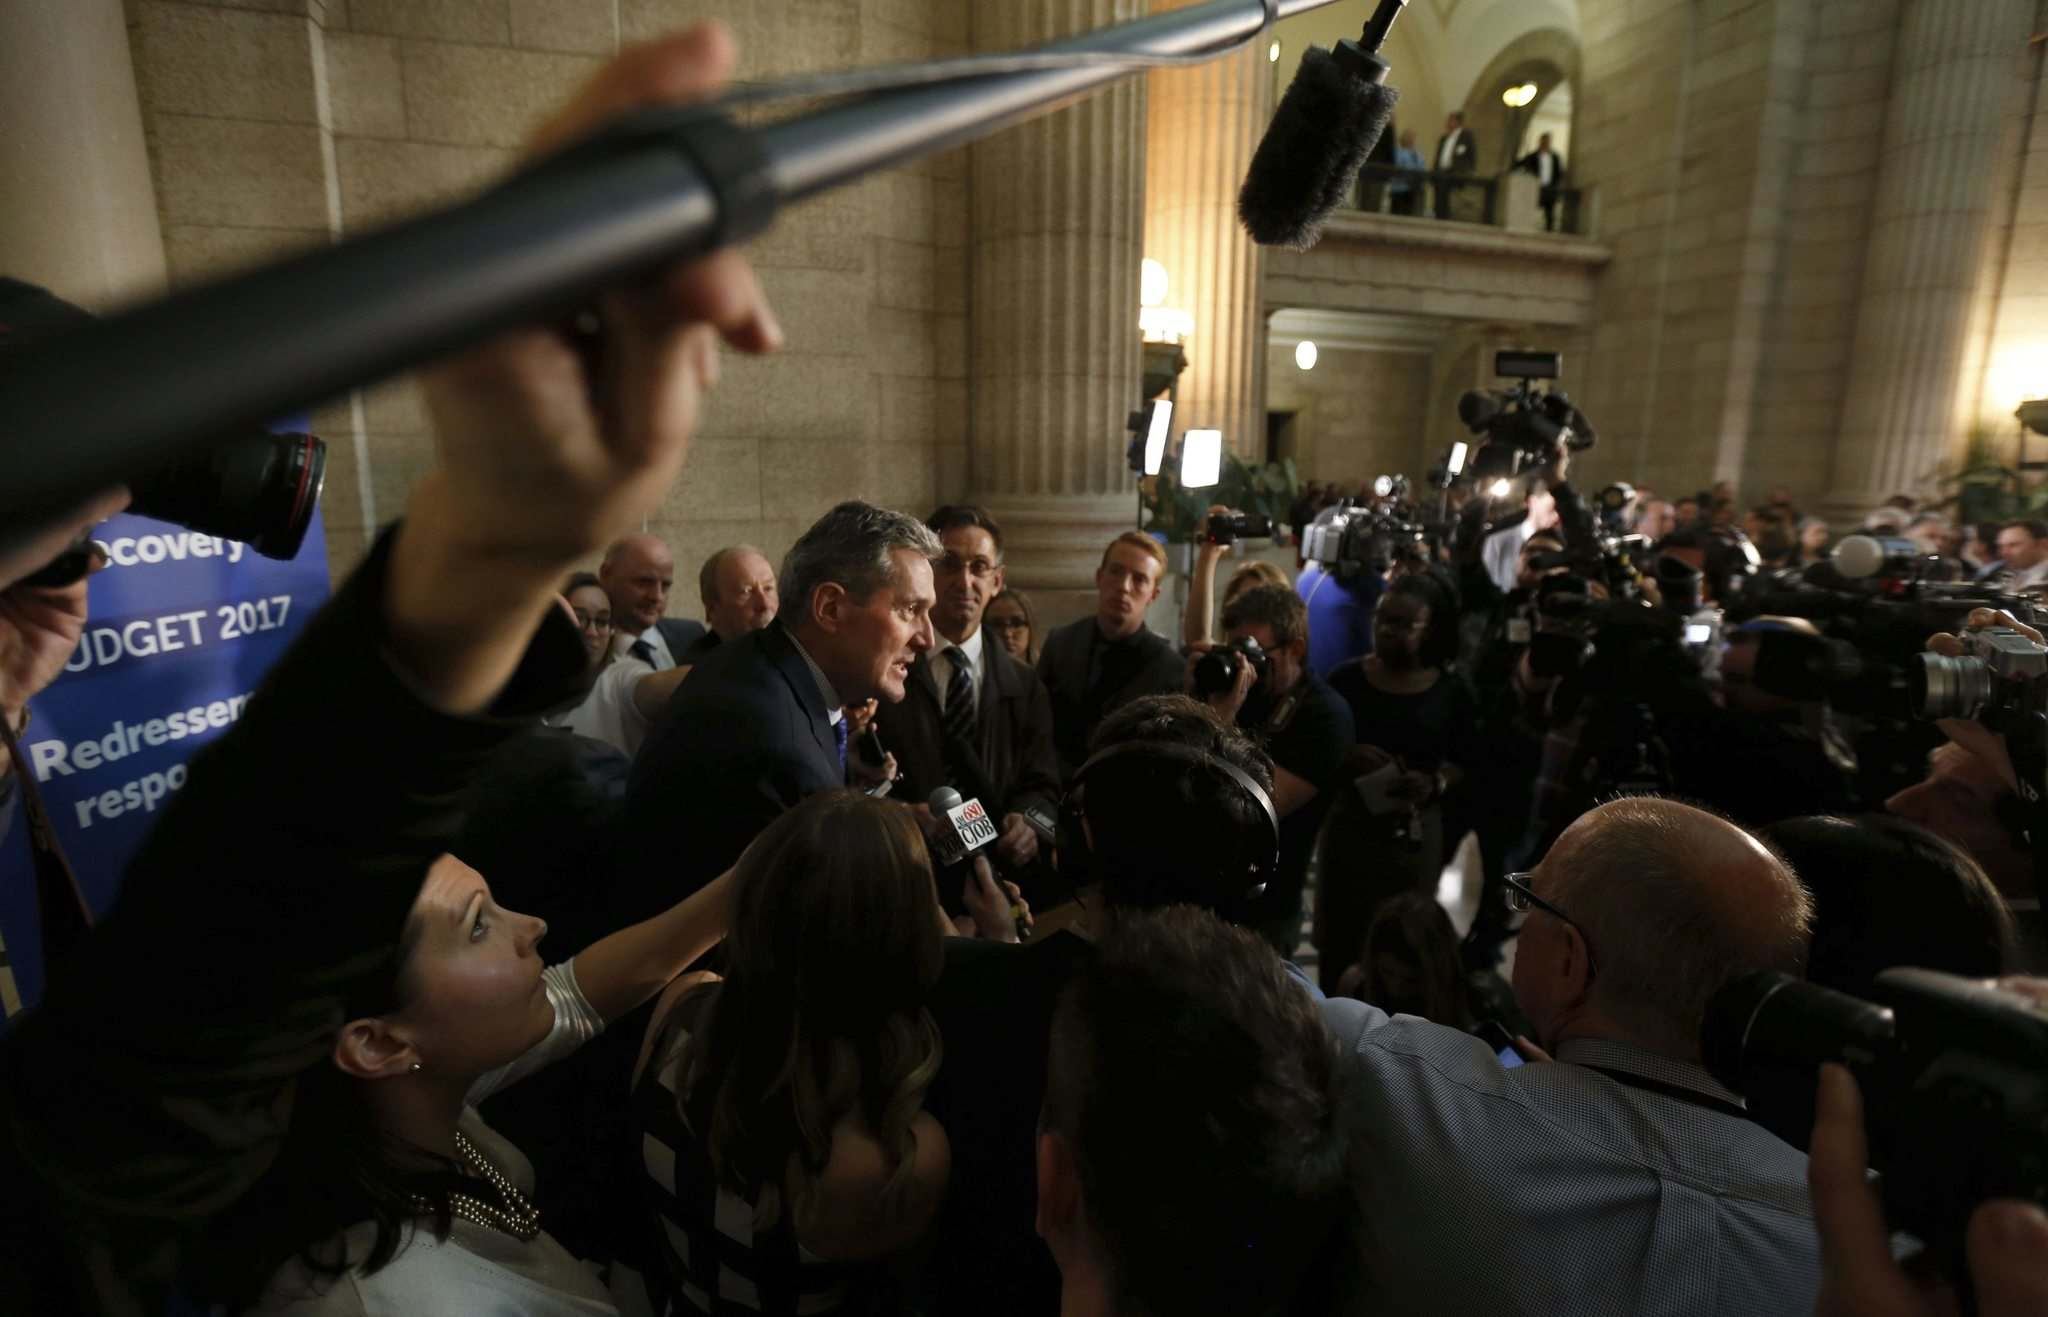 WAYNE GLOWACKI / WINNIPEG FREE PRESS FILES</p><p>Premier Brian Pallister in centre, speaks with media after the budget was delivered in the Manitoba Legislature Tuesday.</p>